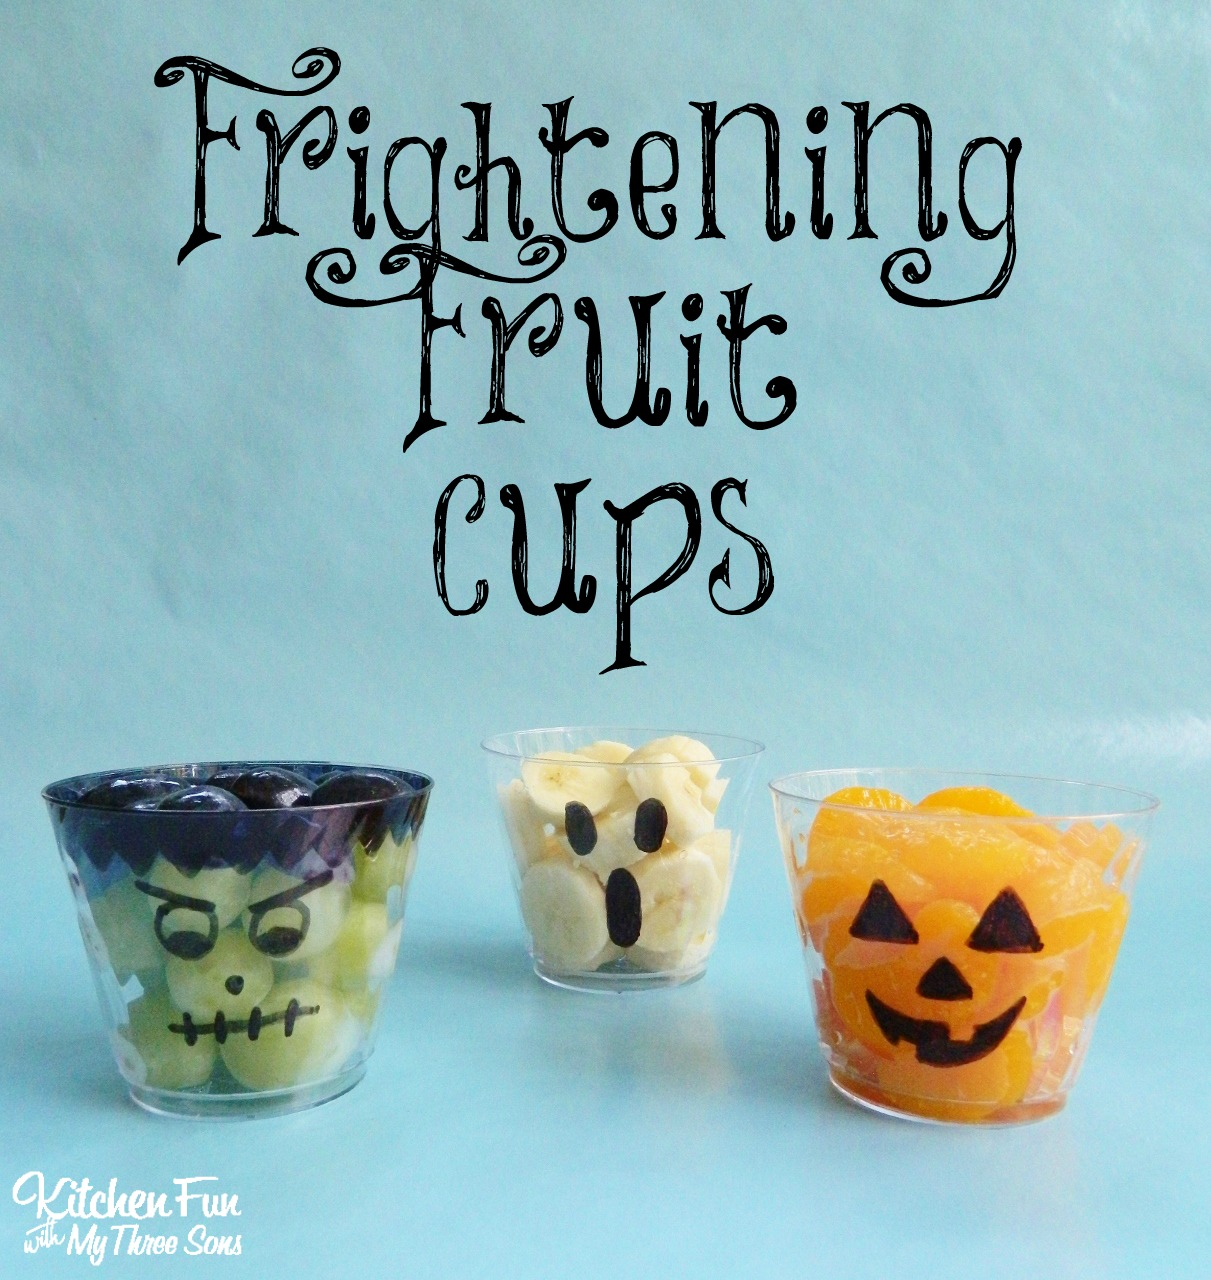 Kitchen Fun And Crafty Friday Link Party 167: Halloween Frightening Fruit Cups